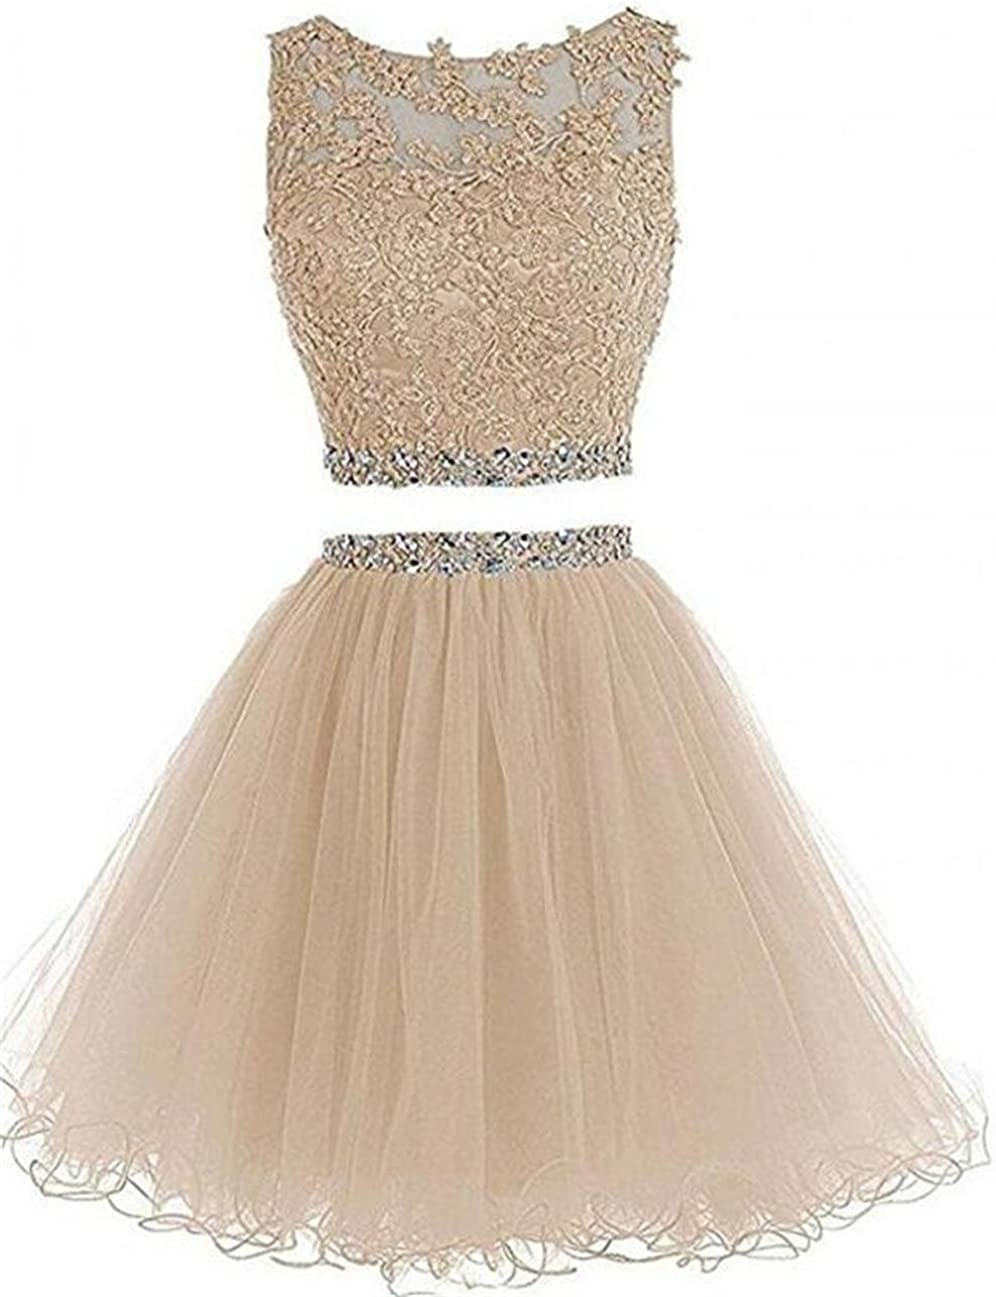 Dydsz Women's Prom Homecoming Dresses Short for Juniors Teens 2 Piece Party Gown D127